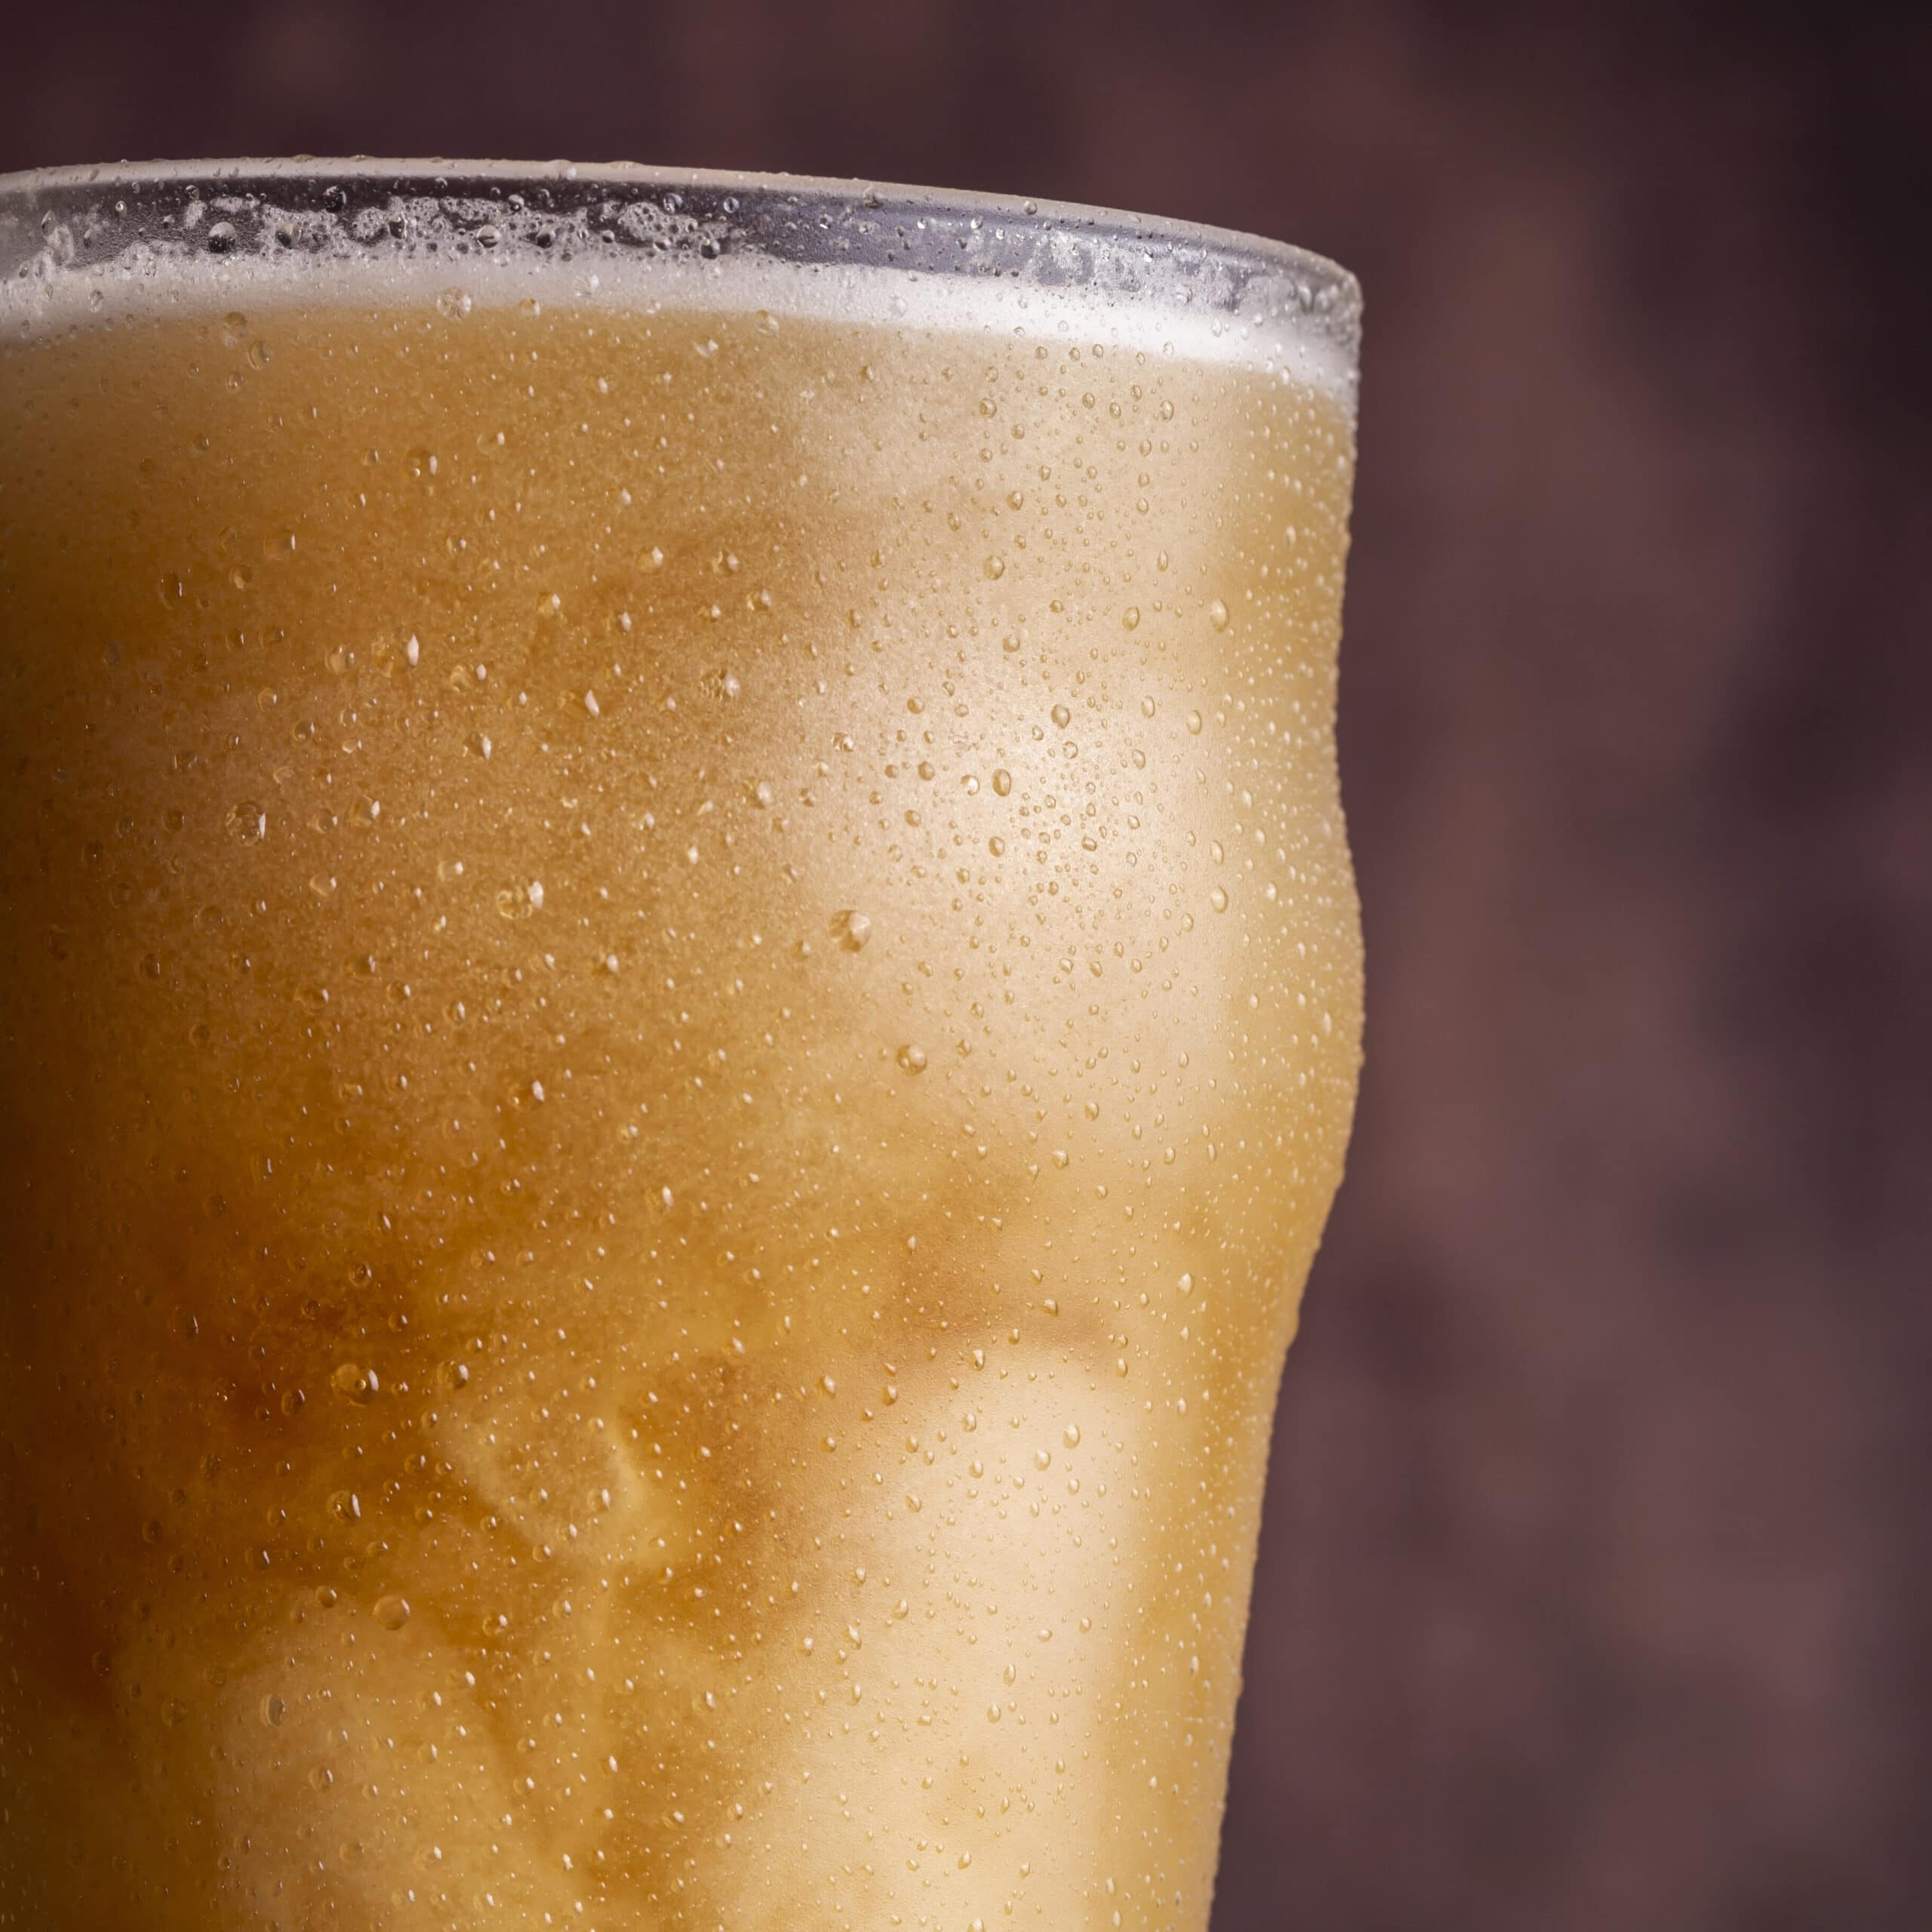 Detail of pint of cold unfiltered wheat beer with water droplets all over the glass